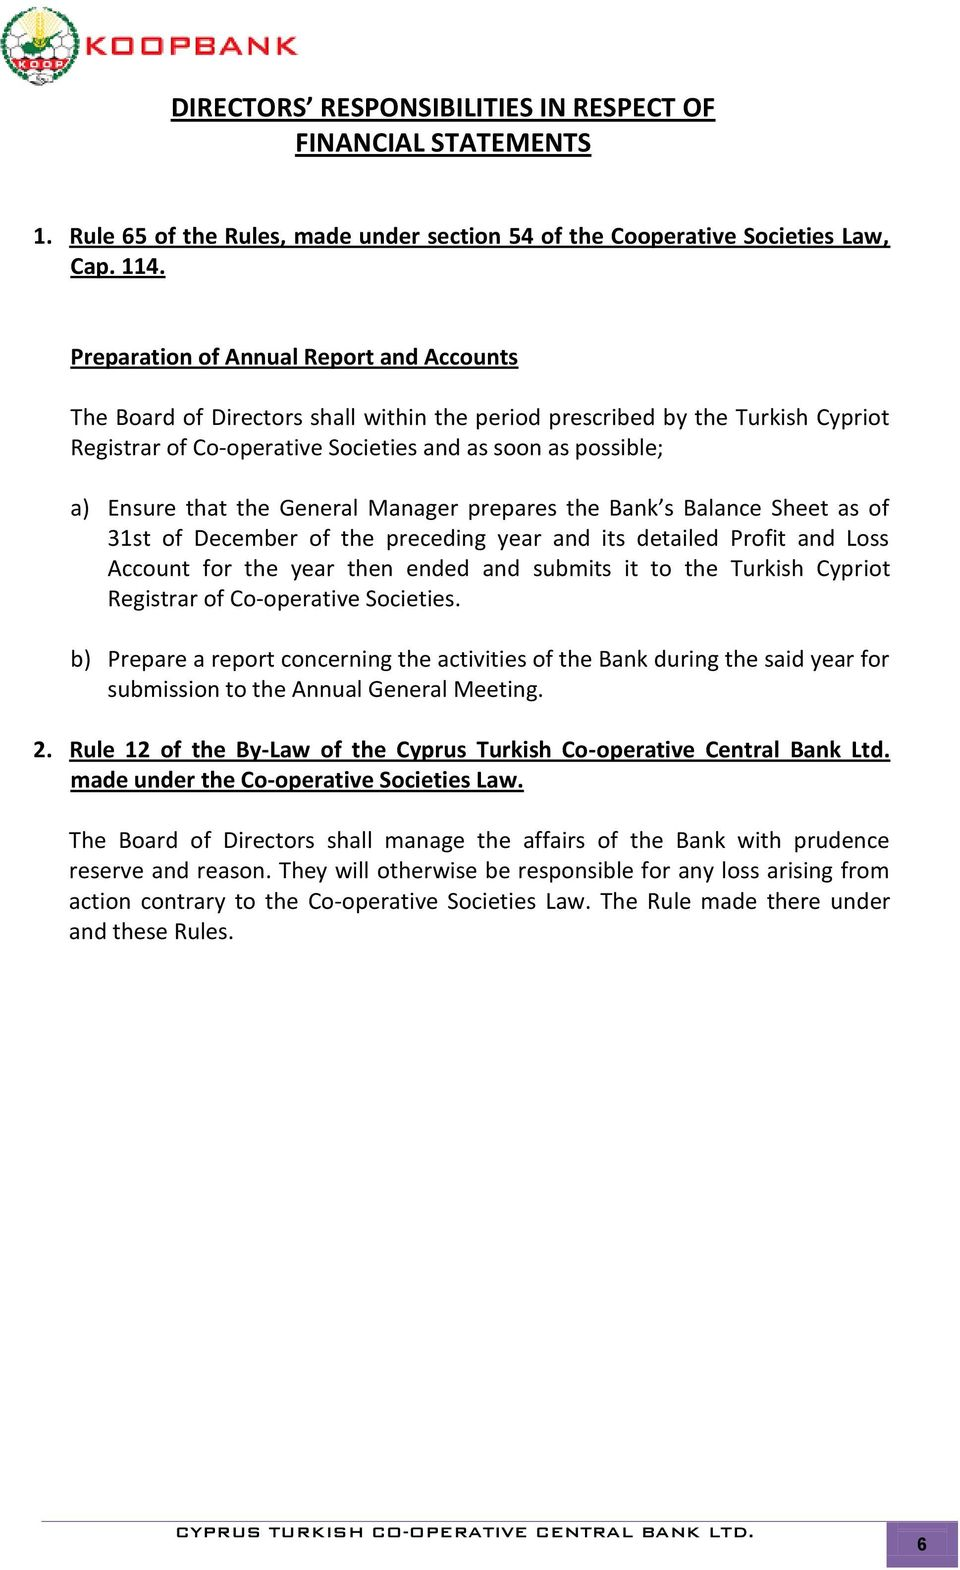 the General Manager prepares the Bank s Balance Sheet as of 31st of December of the preceding year and its detailed Profit and Loss Account for the year then ended and submits it to the Turkish